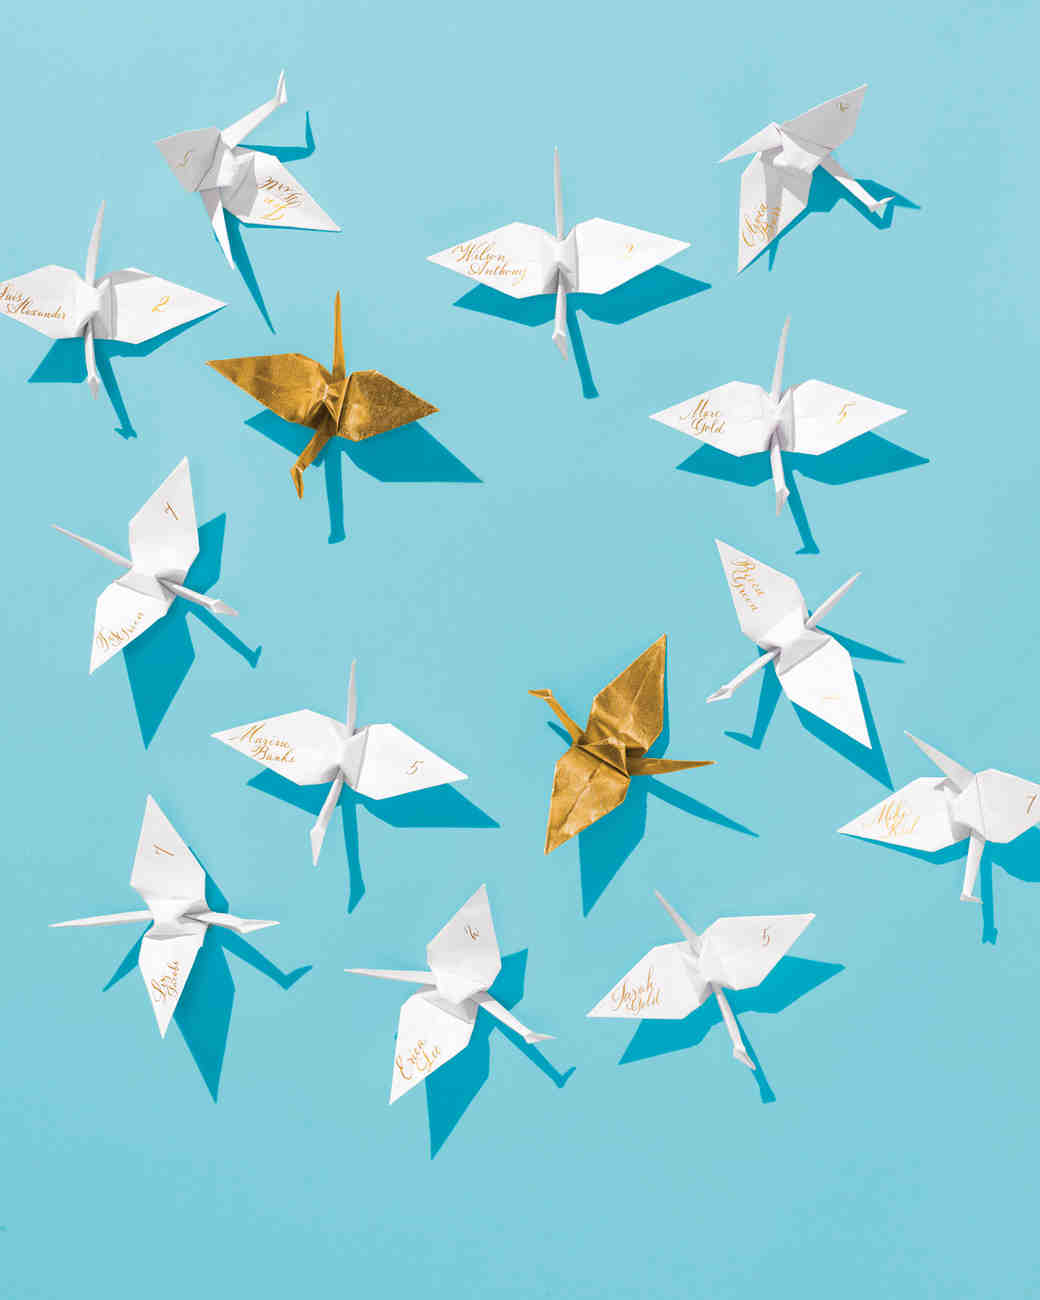 How to Make An Origami Crane for Your Wedding